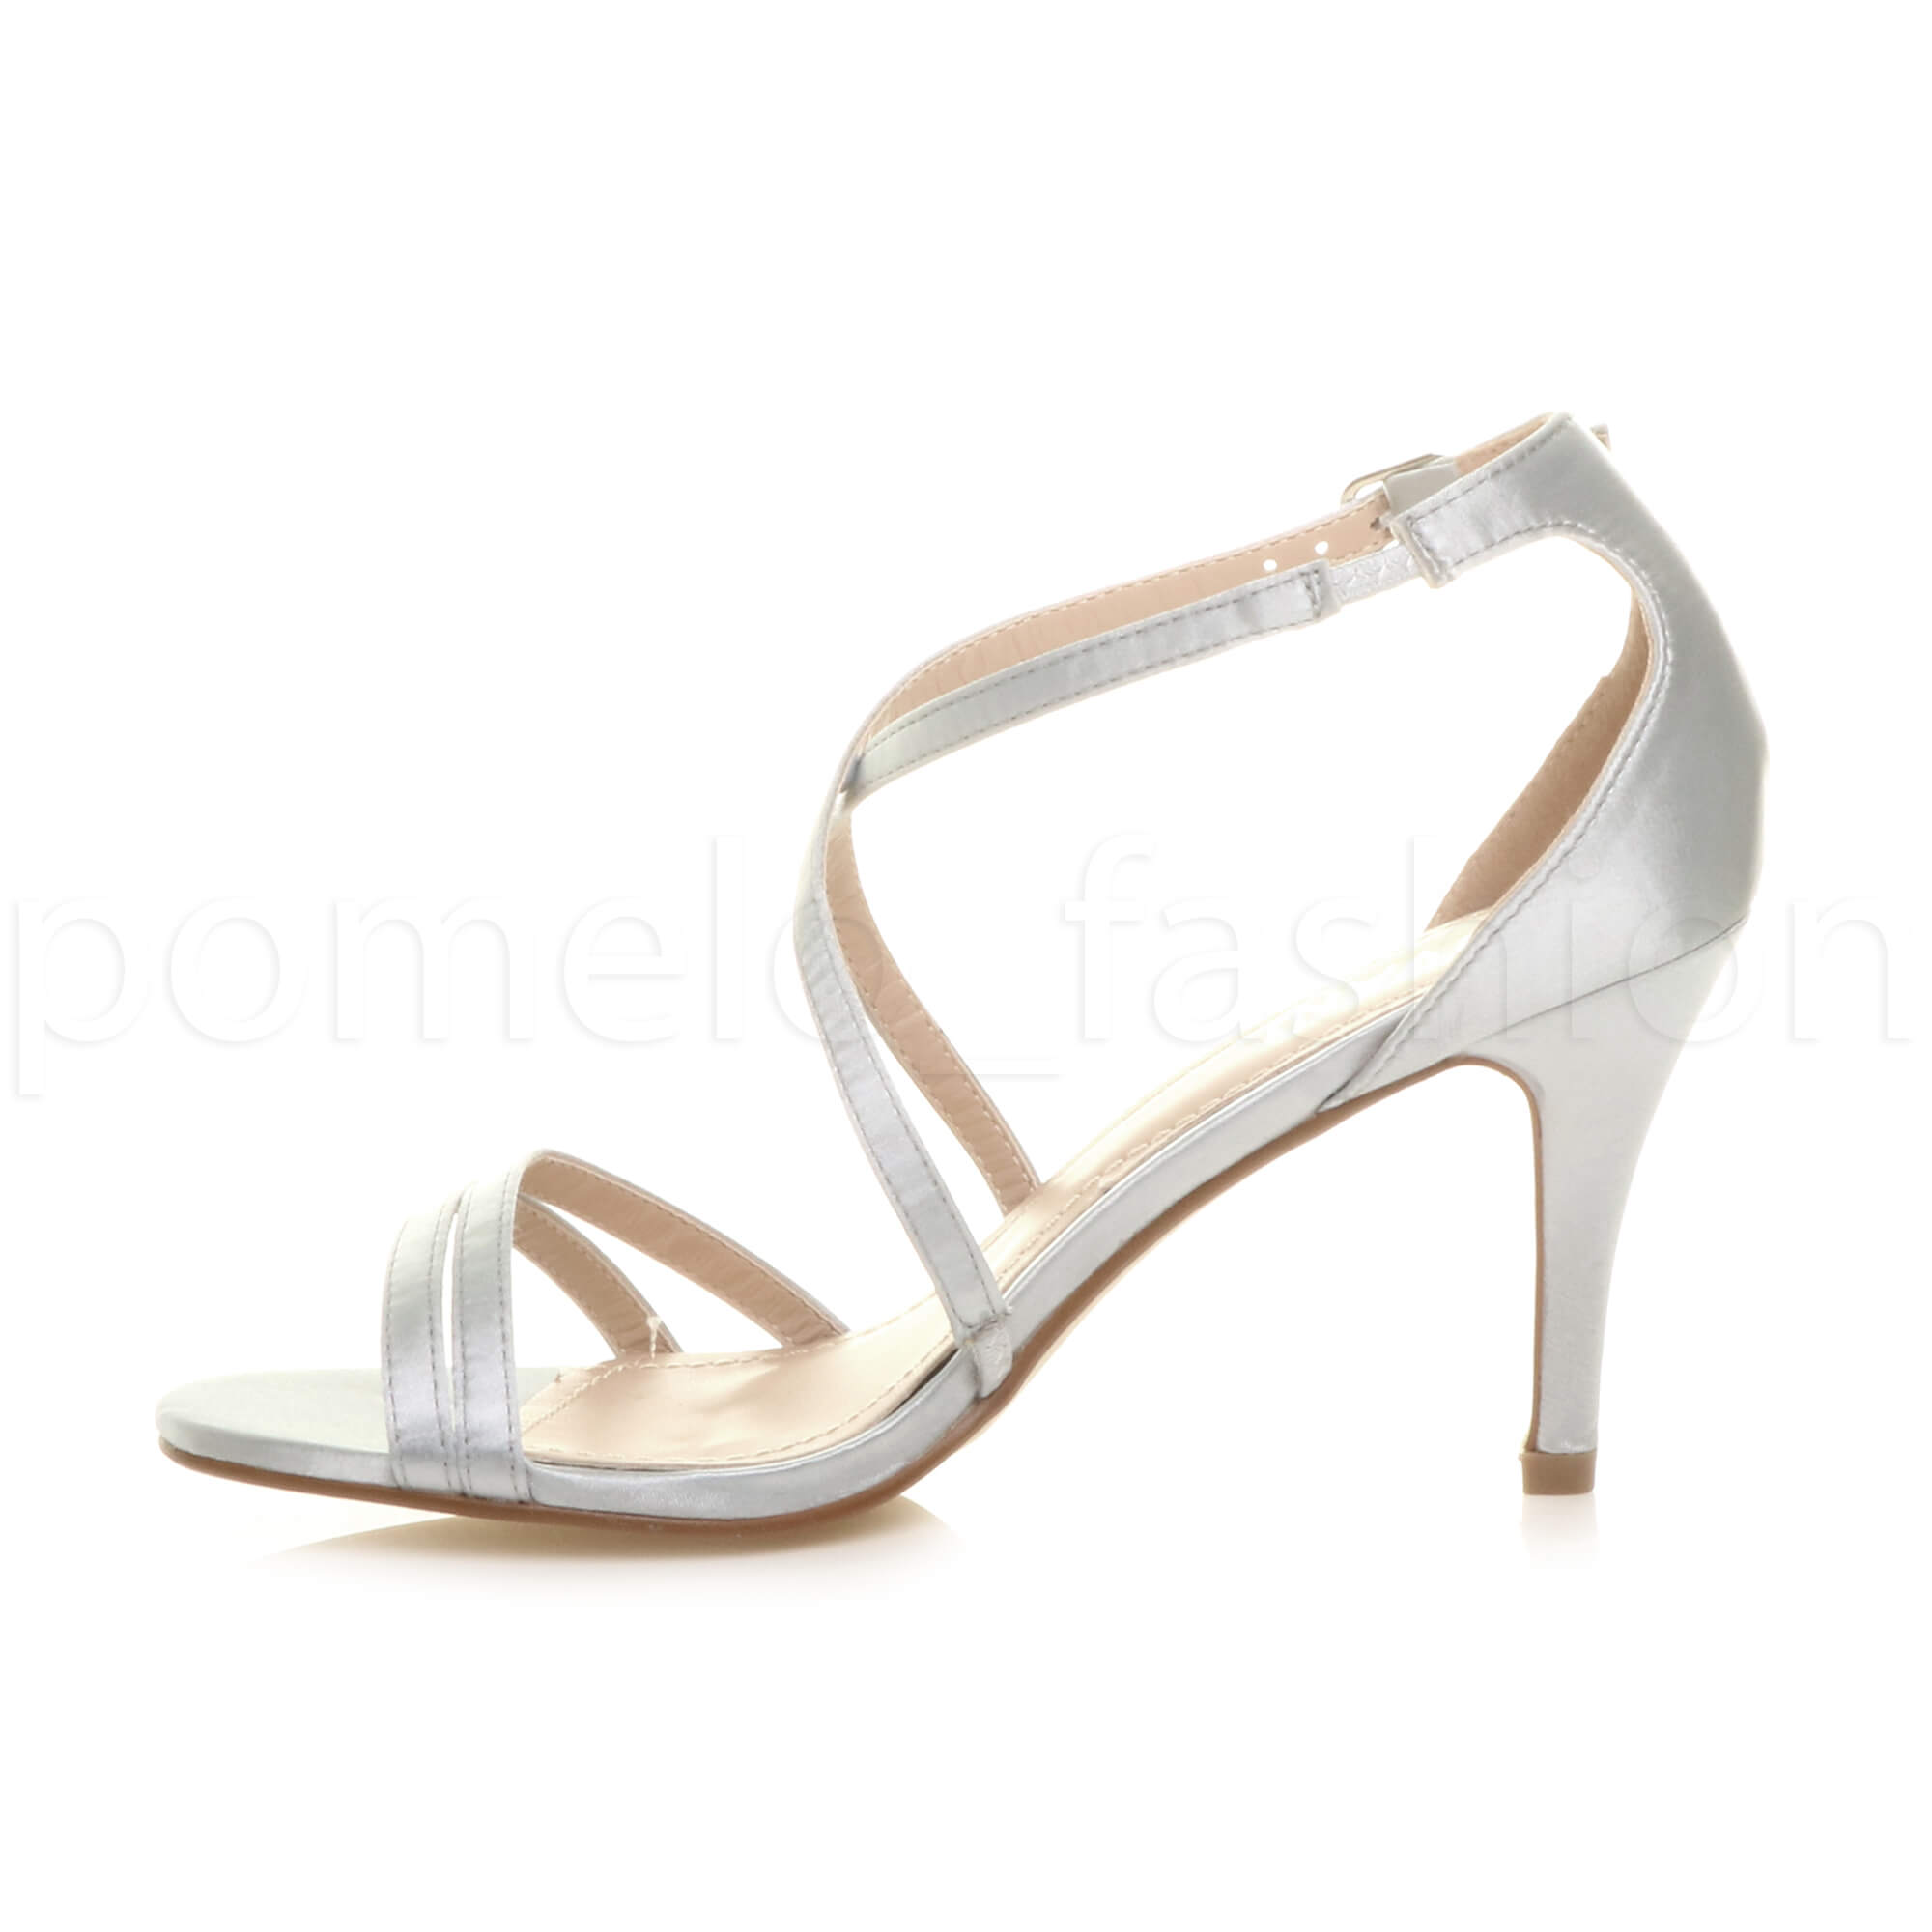 835103b08f1 Womens Ladies Mid High Heel Strappy Crossover Wedding Prom Sandals ...